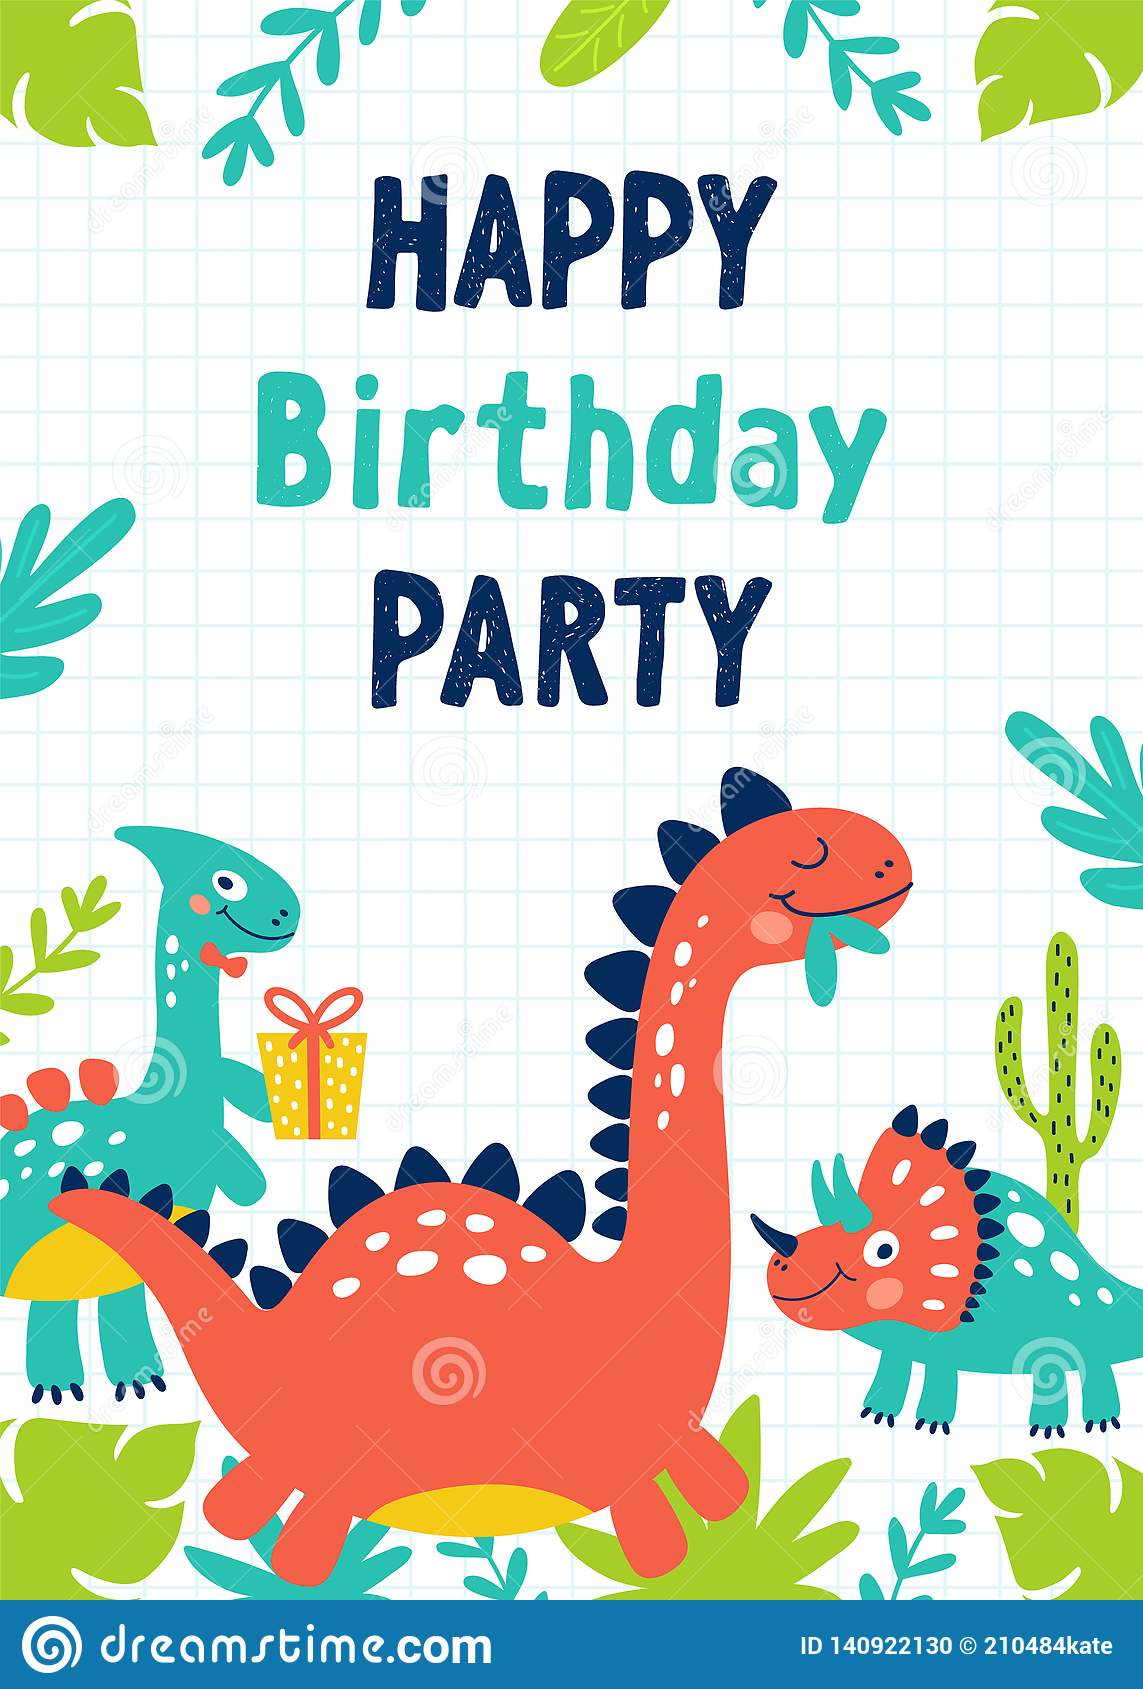 https www dreamstime com dinosaur birthday party invitation vector illustrations image140922130